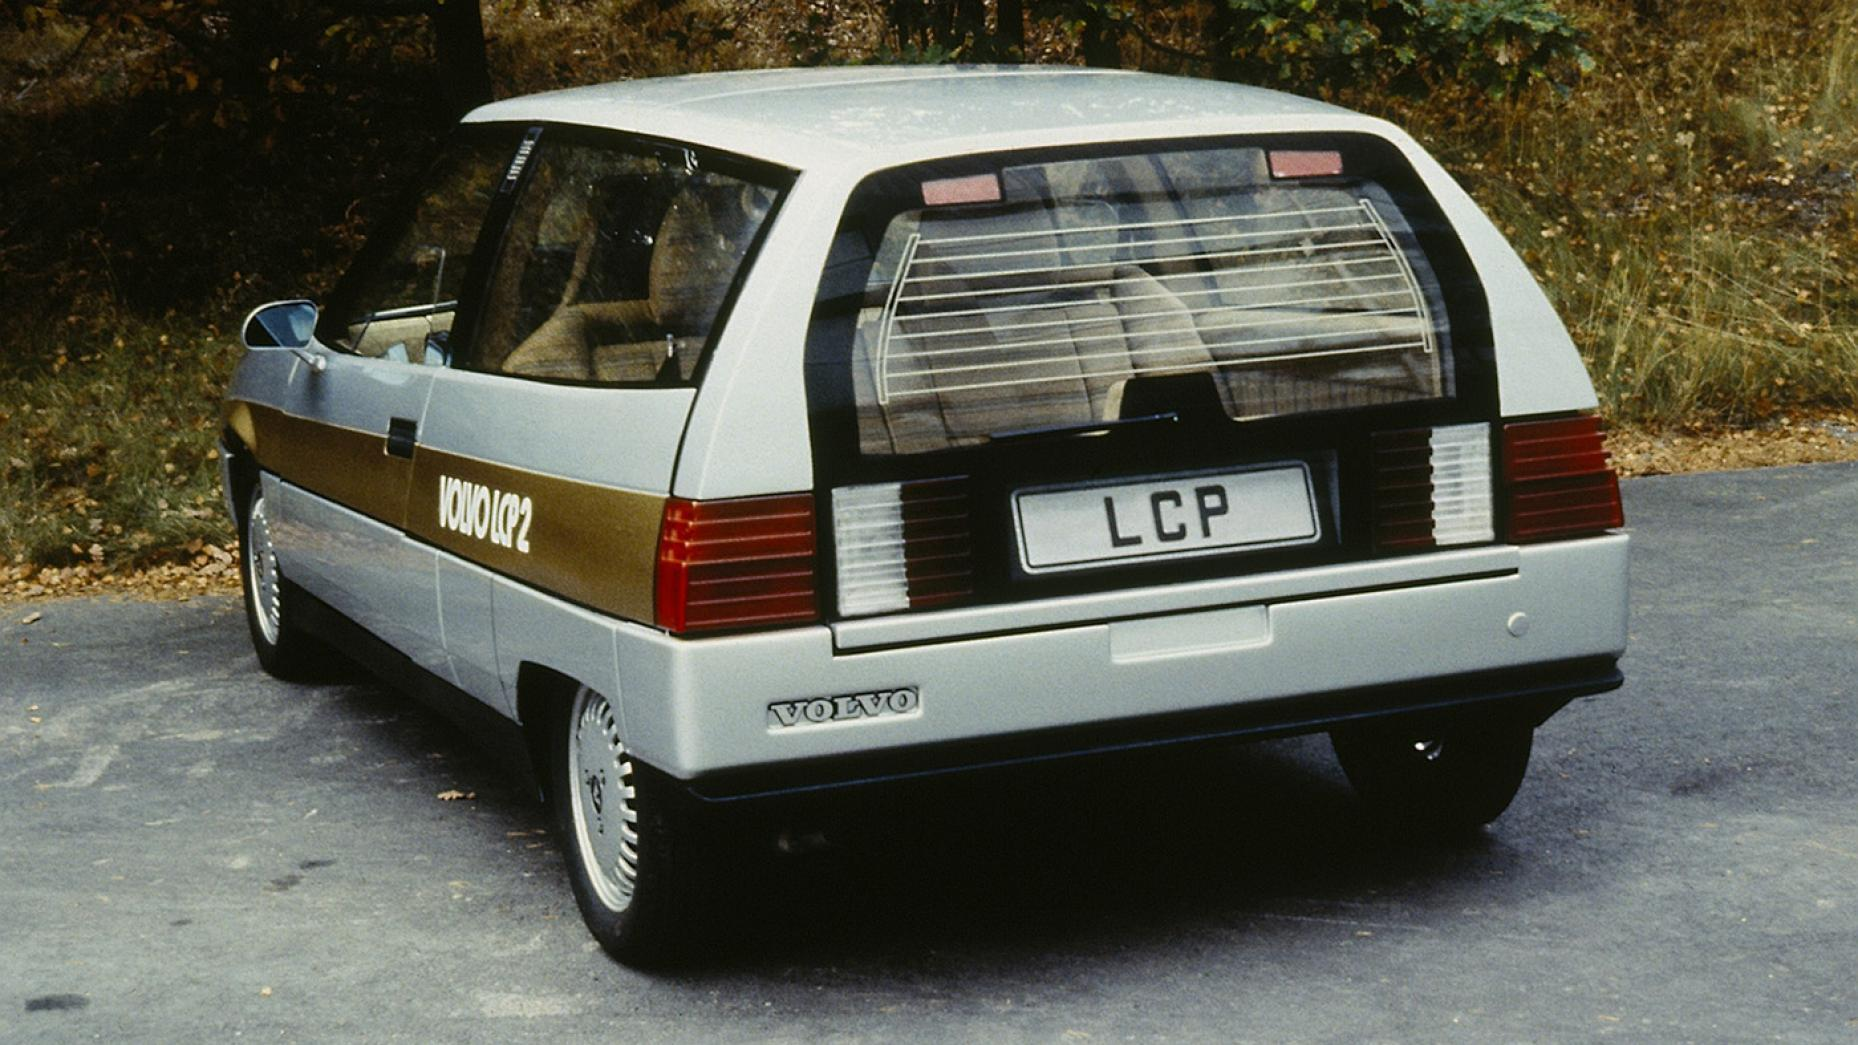 Volvo LCP 2000 1983